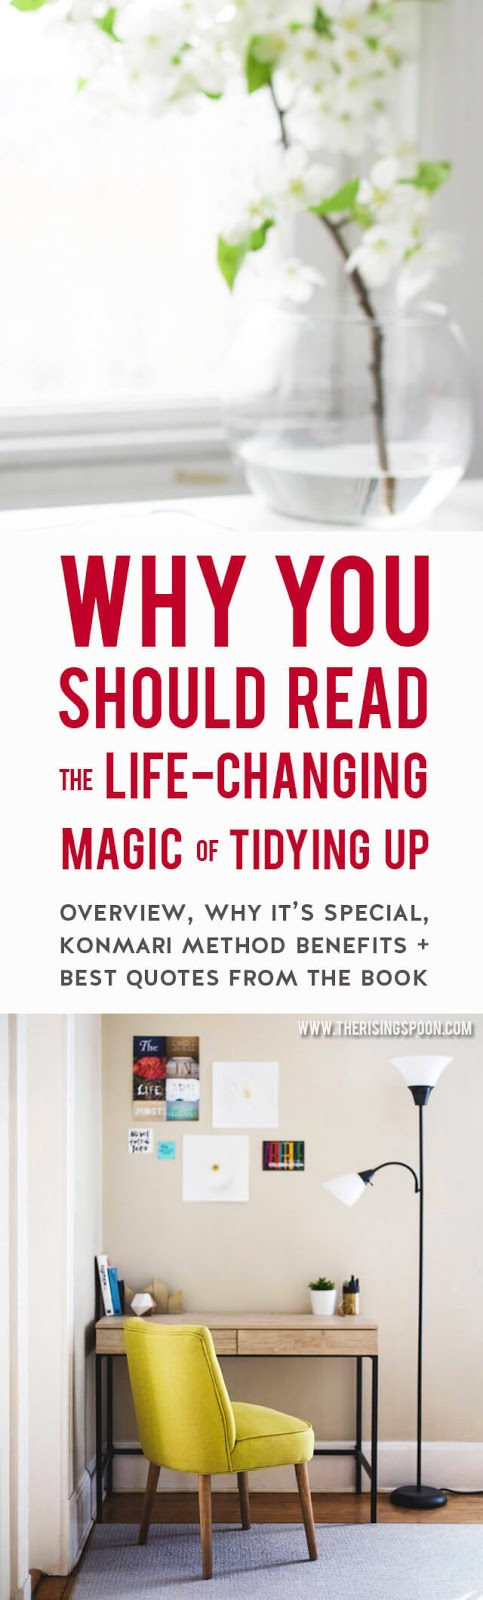 Tired of decluttering and organizing your home every season only to have stuff quickly pile up again? I was, too, until I discovered The Life-Changing Magic of Tidying Up book and its KonMari Method for tidying. It has truly changed my life for the better!